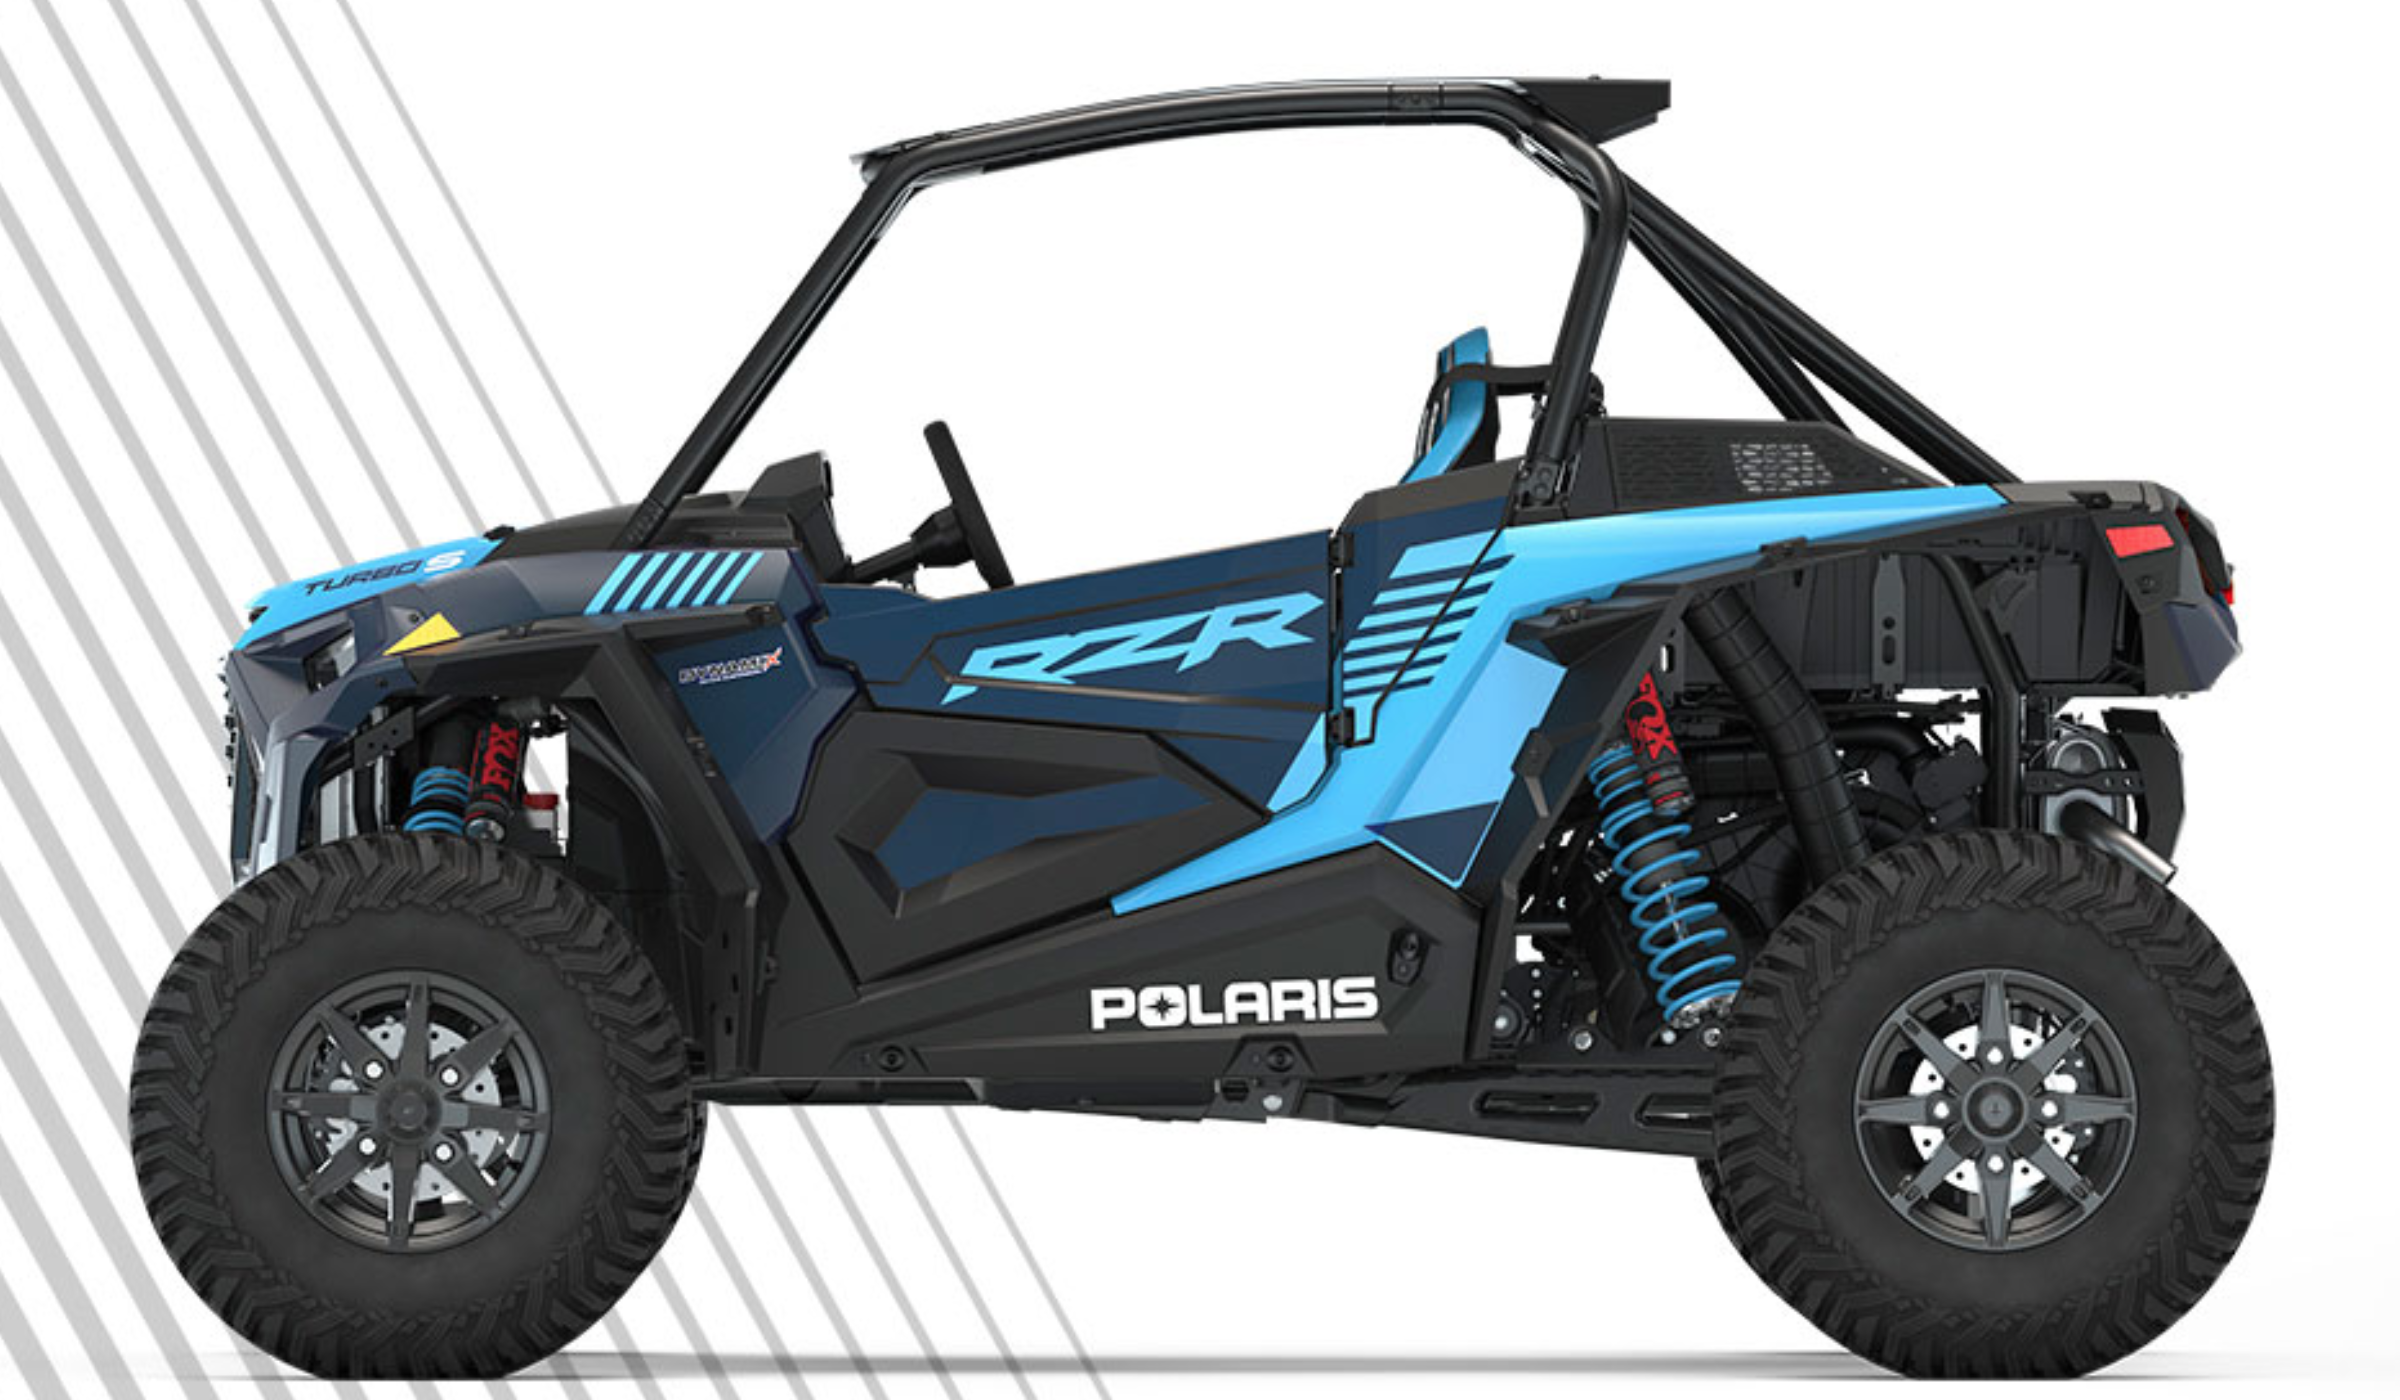 Polaris Celebrates 65th Anniversary with Industry-Leading 2020 Off-Road Lineup